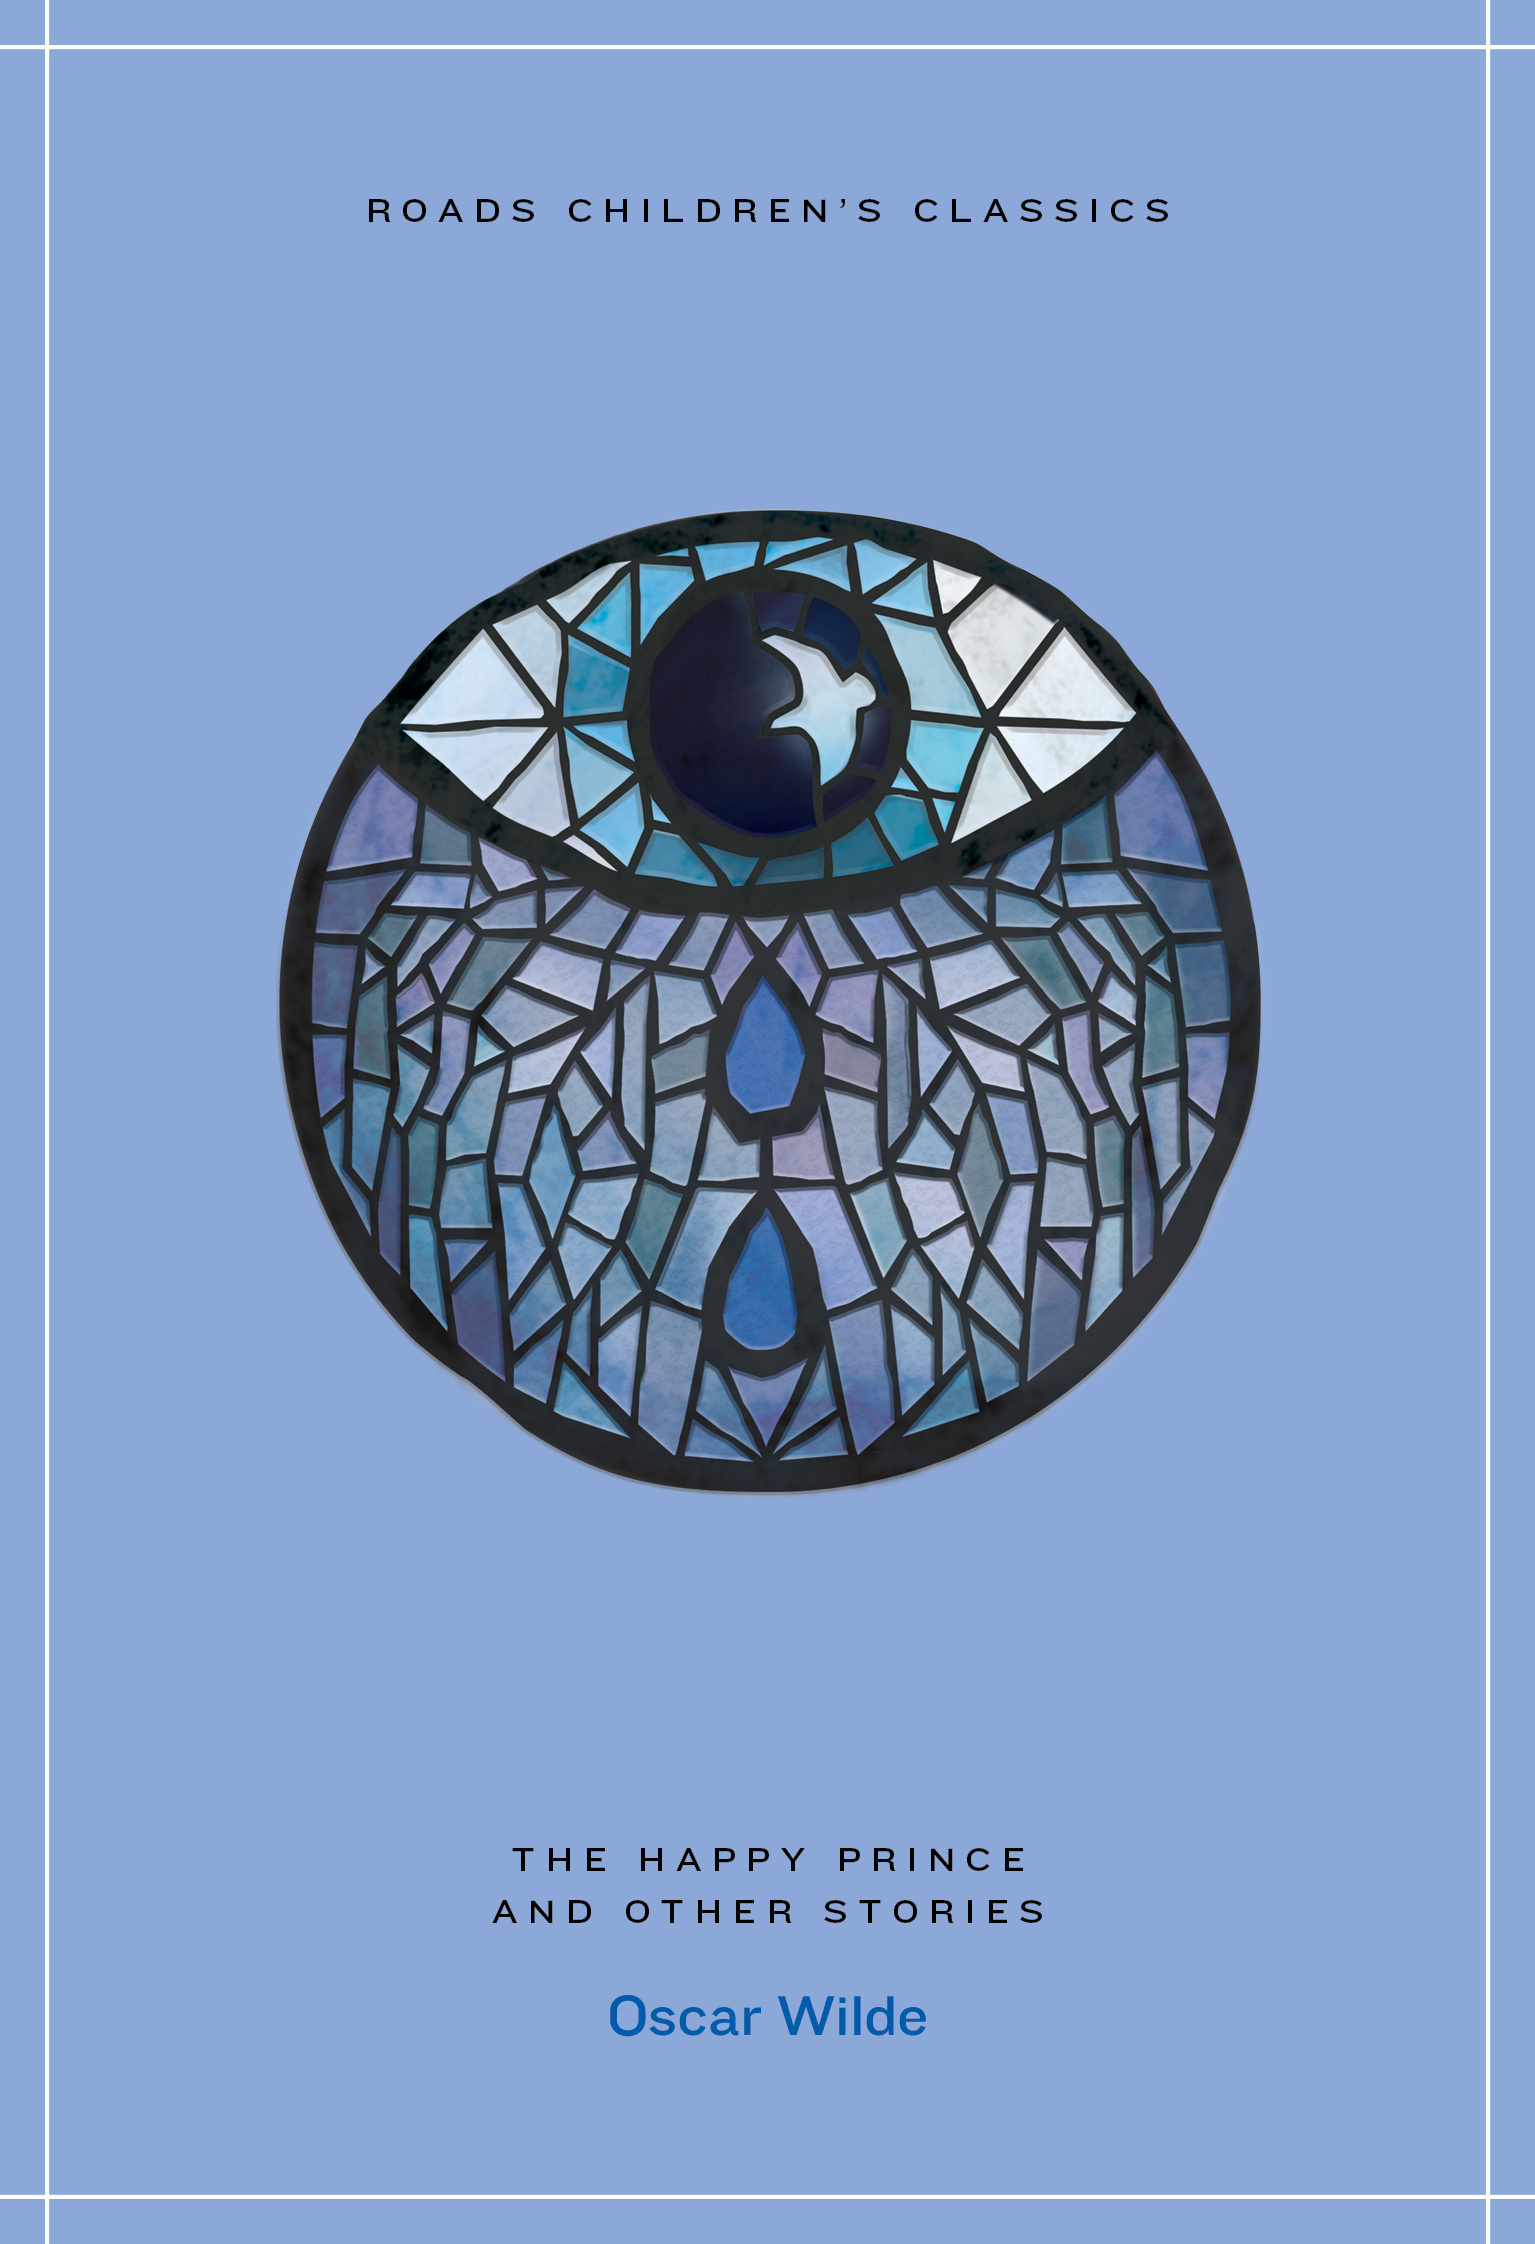 Cover image: The Happy Prince and Other Stories